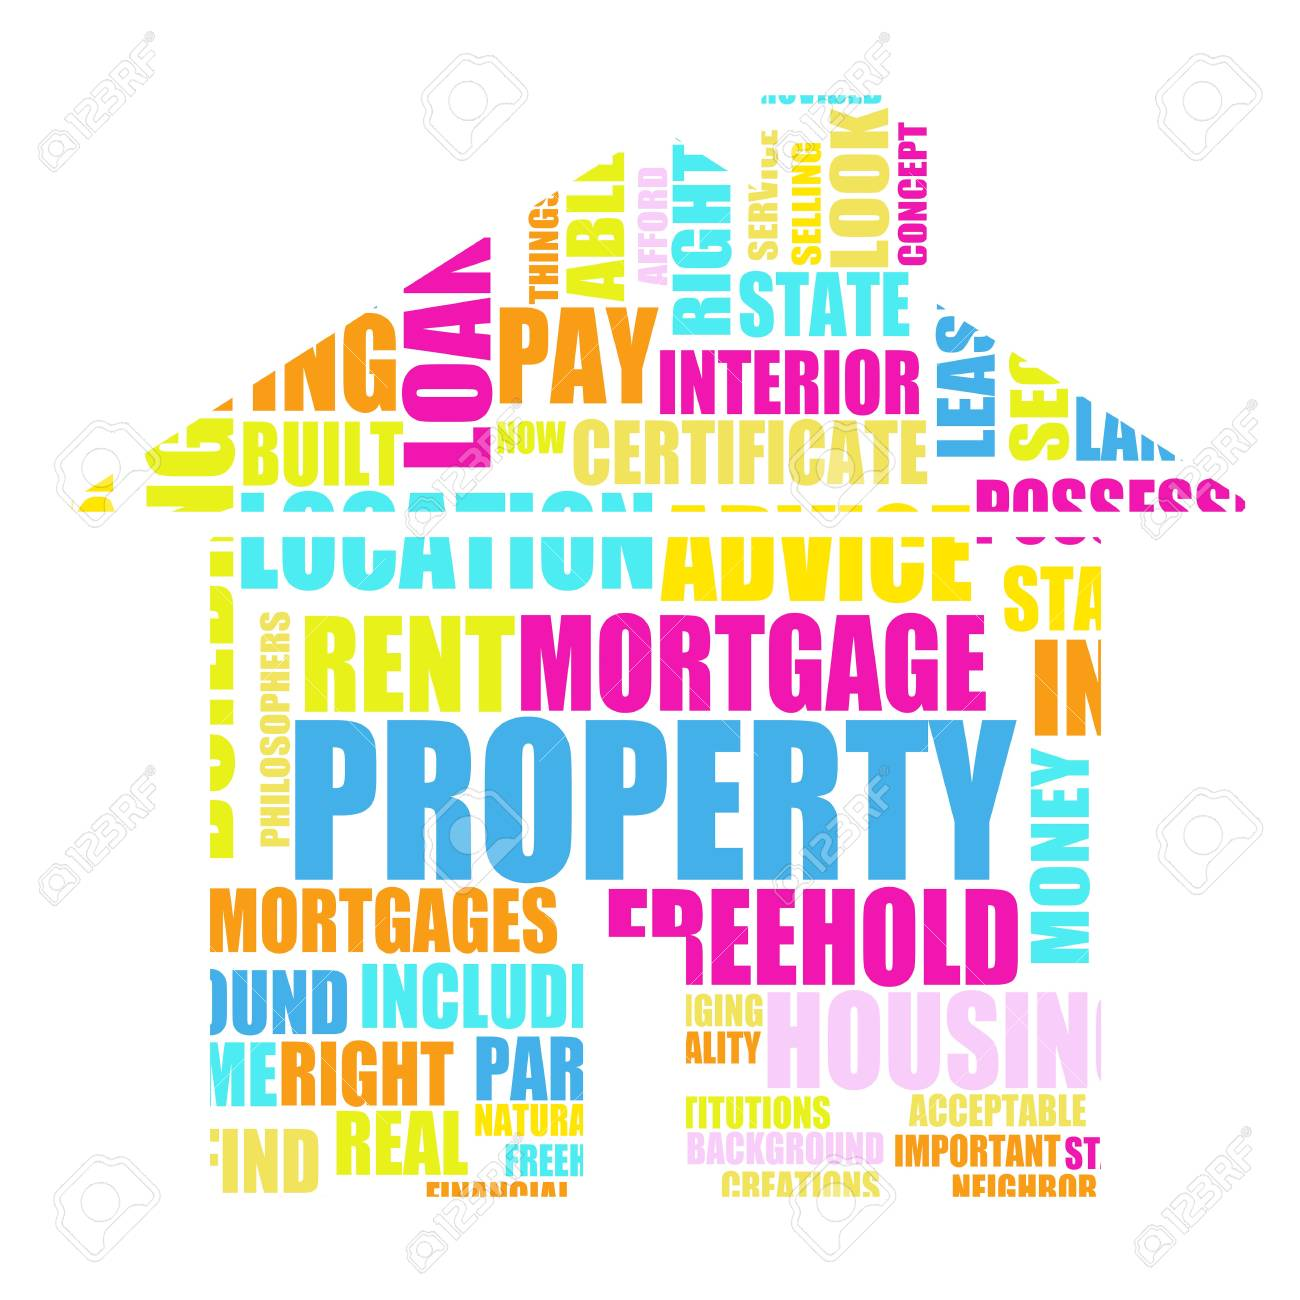 Property Real Estate Concept as a Abstract Stock Photo - 6544674